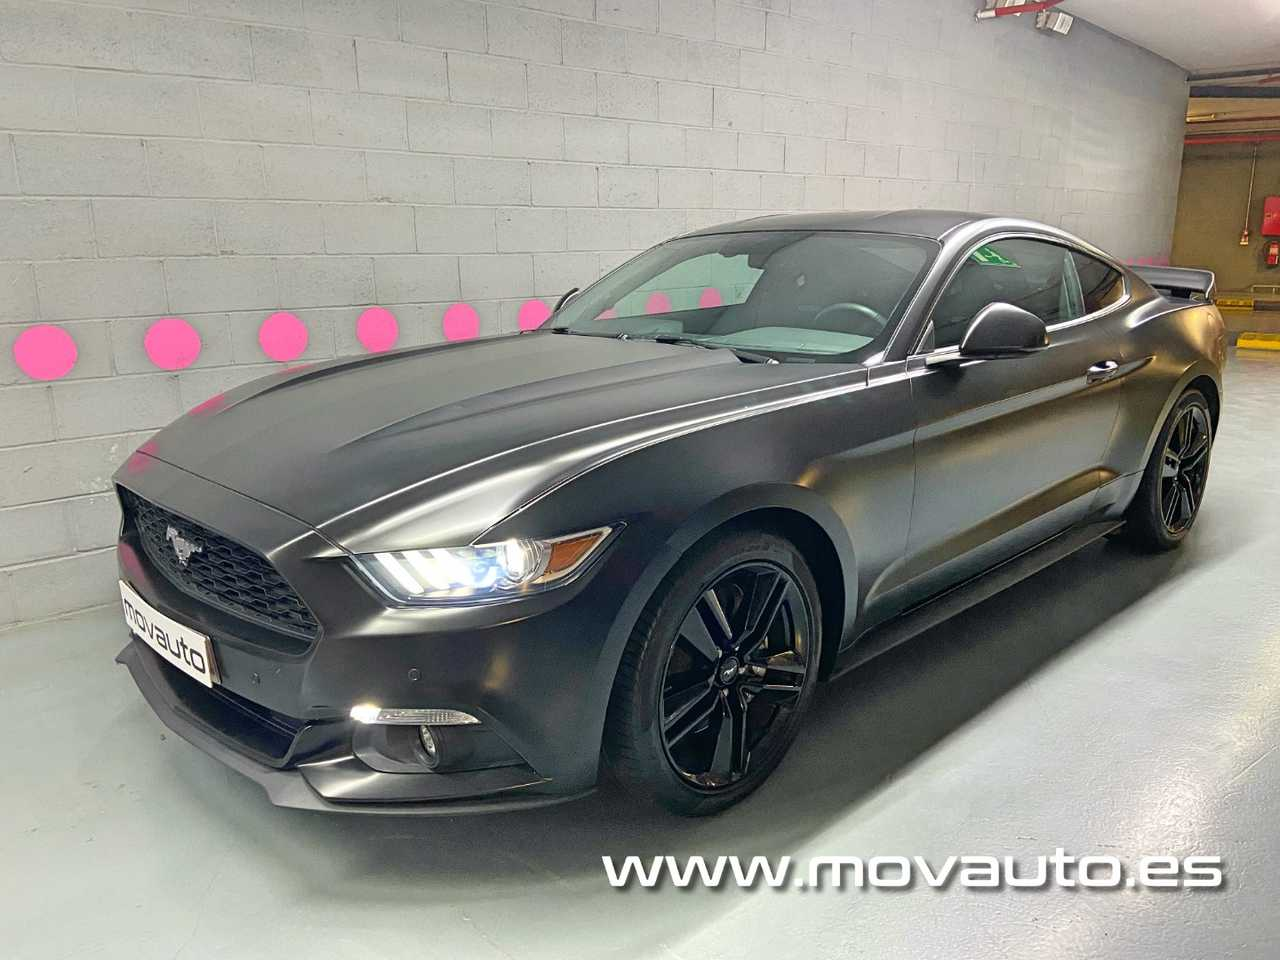 Ford Mustang 2.3 EcoBoost 314cv aut.   - Foto 1